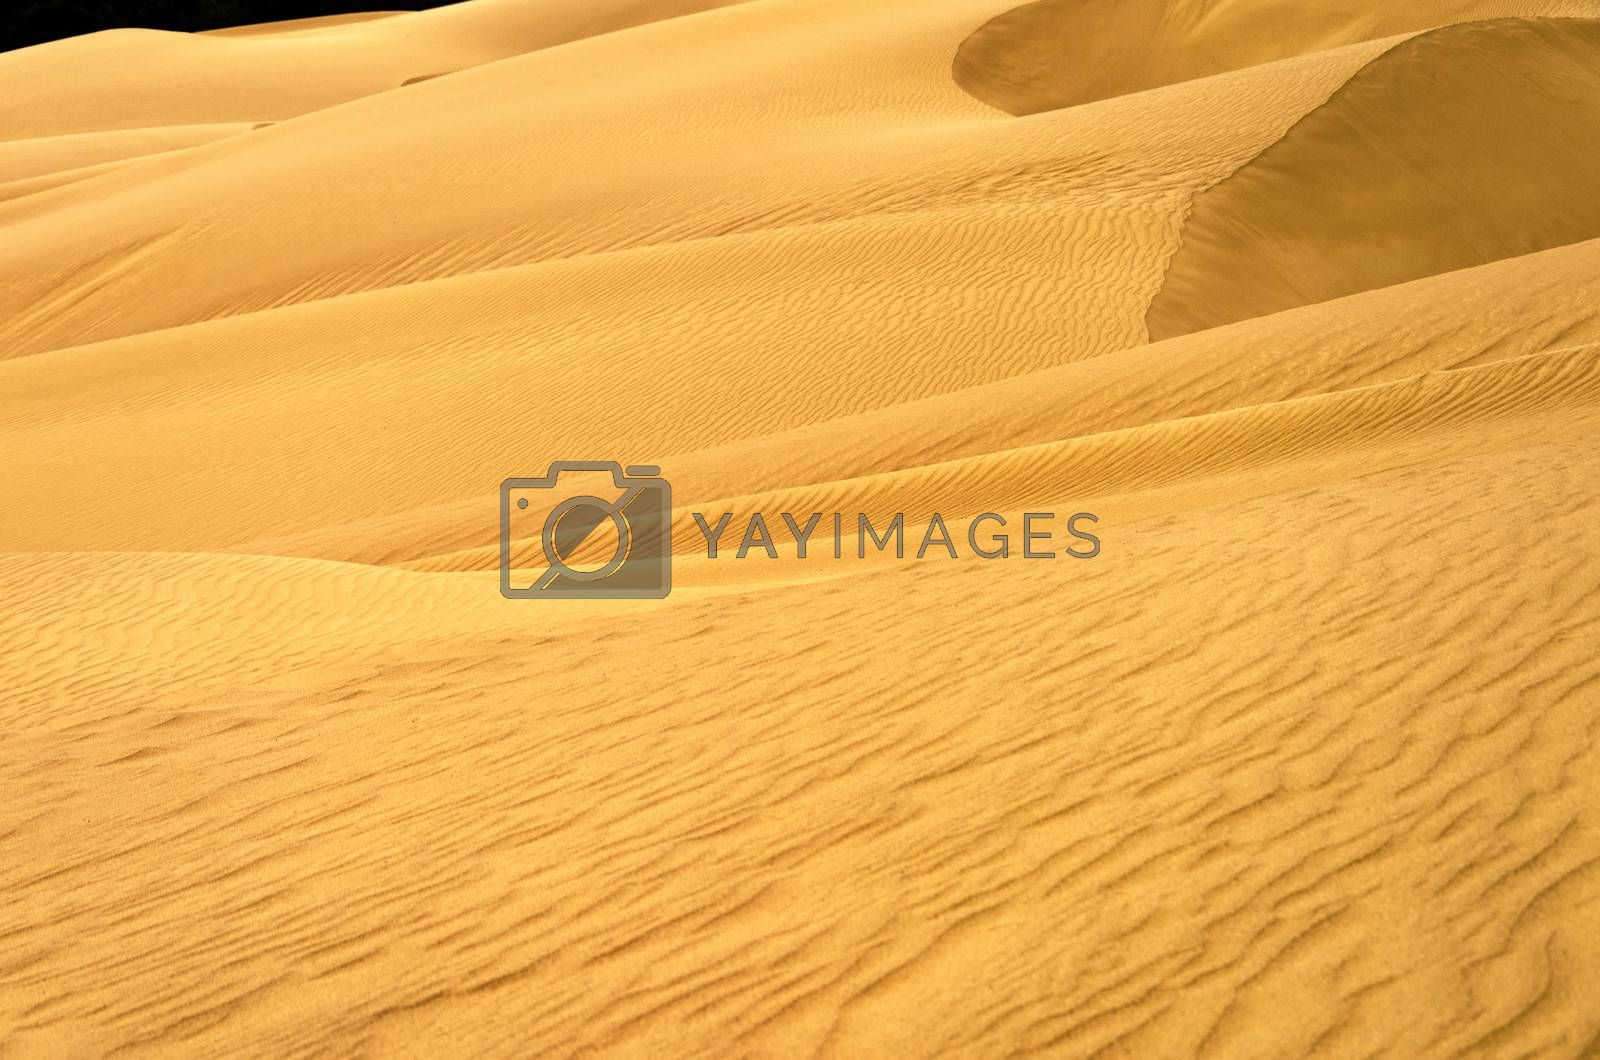 View of a sand dune in Macuira National Park in La Guajira, Colombia